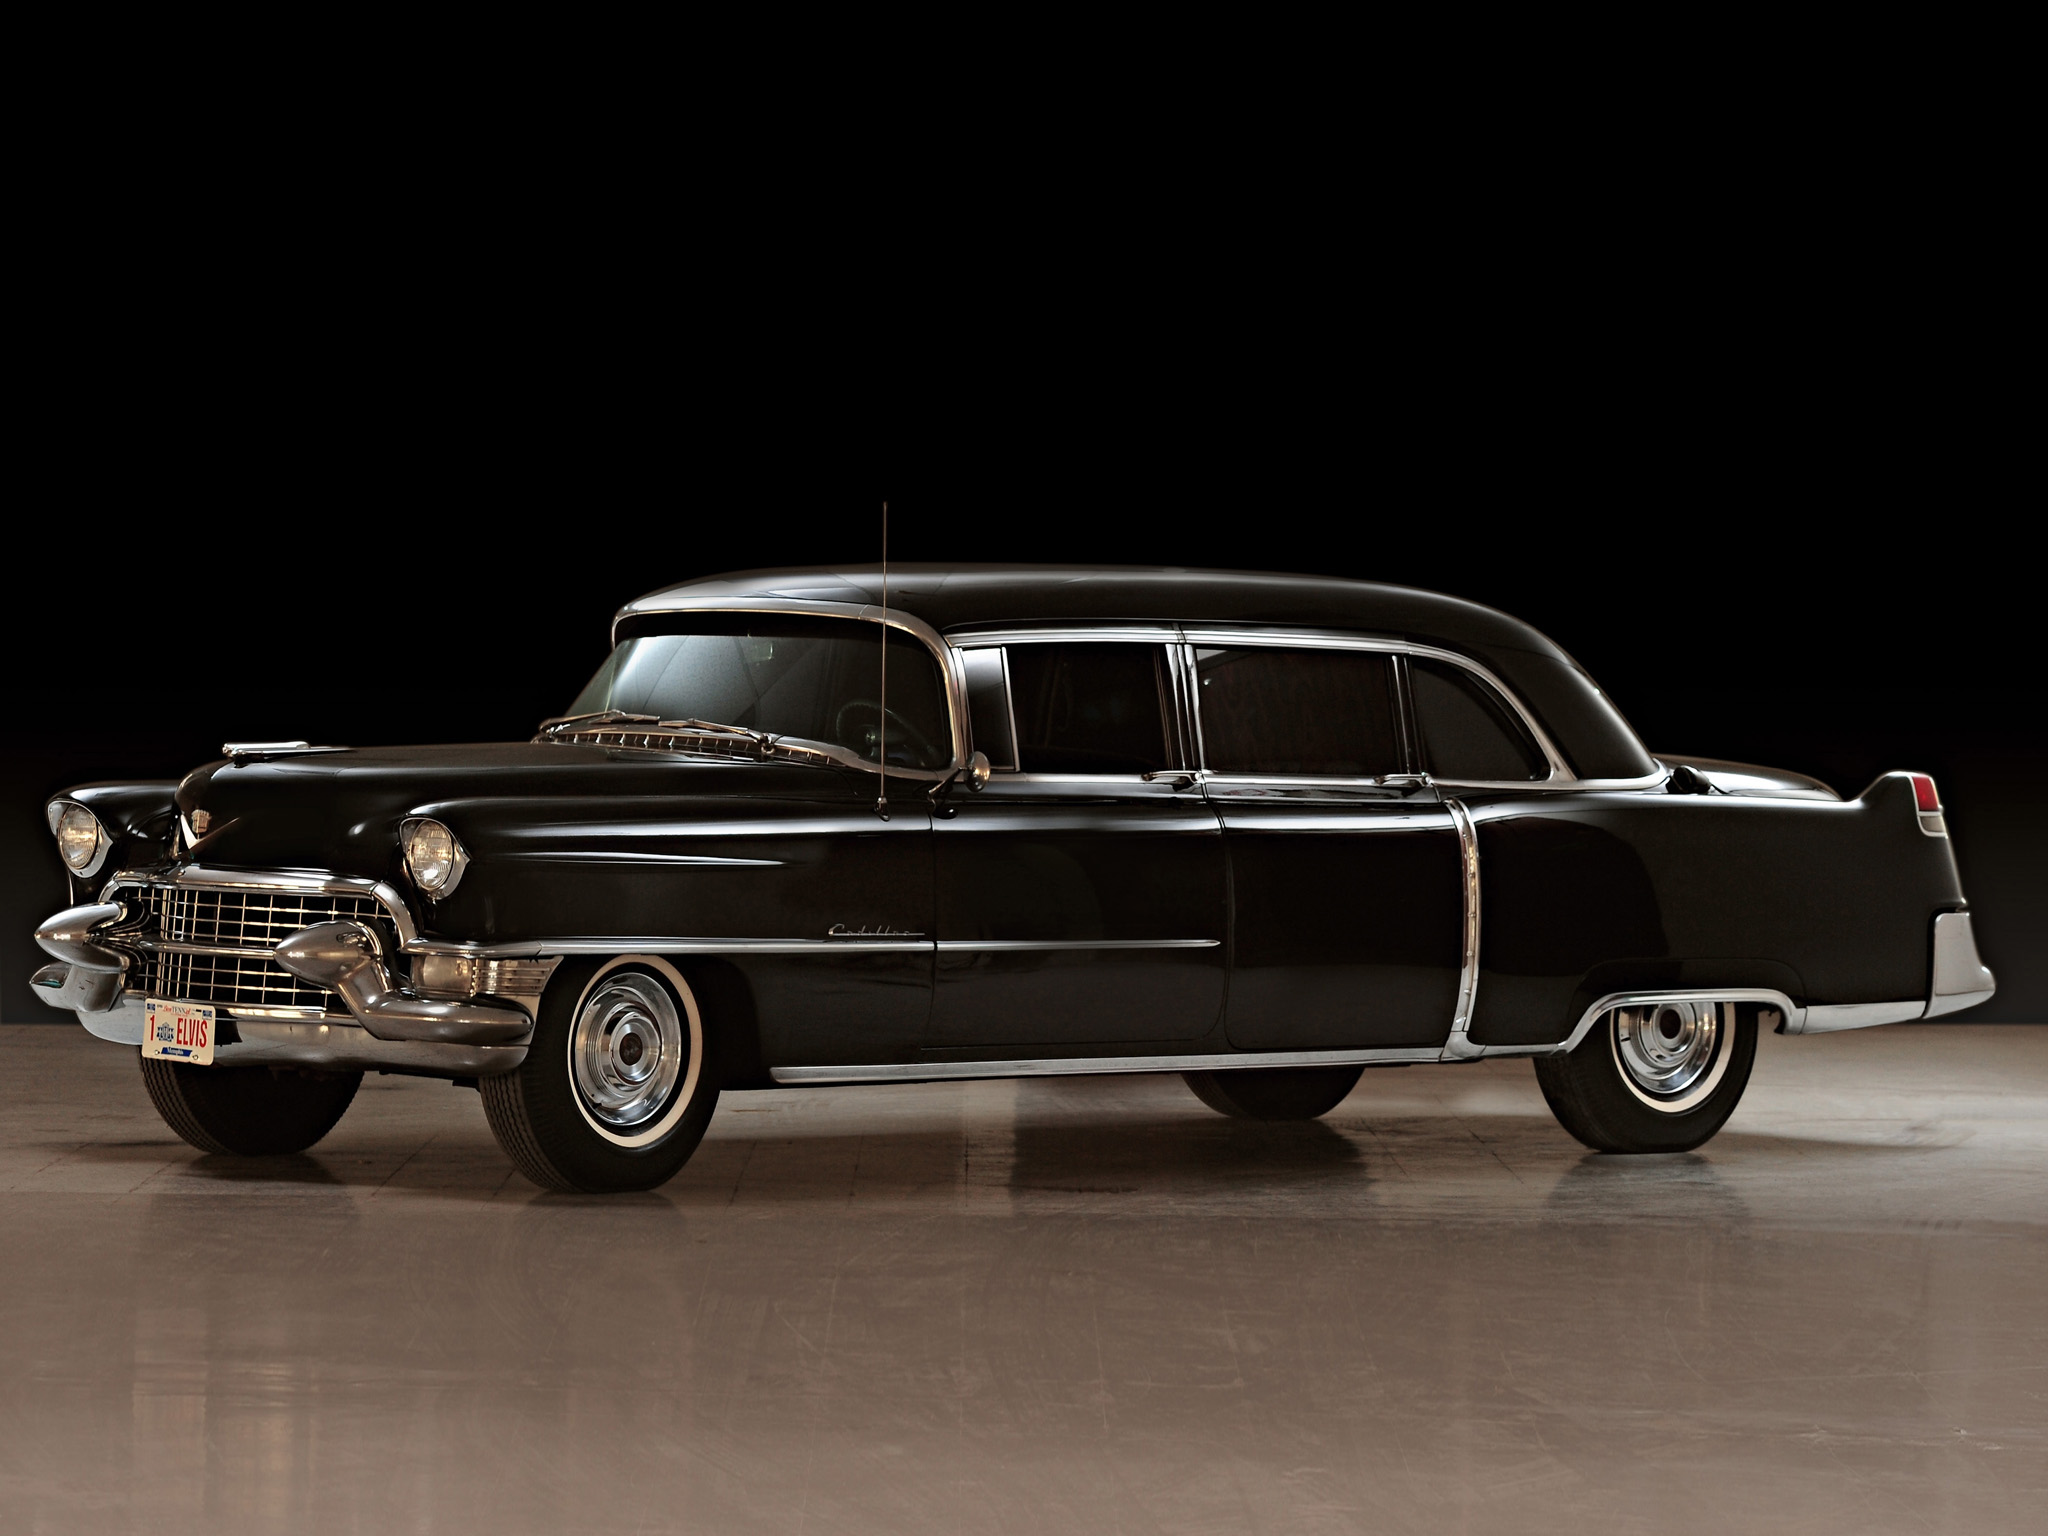 Desktop Wallpapers Cadillac Fleetwood Seventy Five Limousine 1955 2048x1536